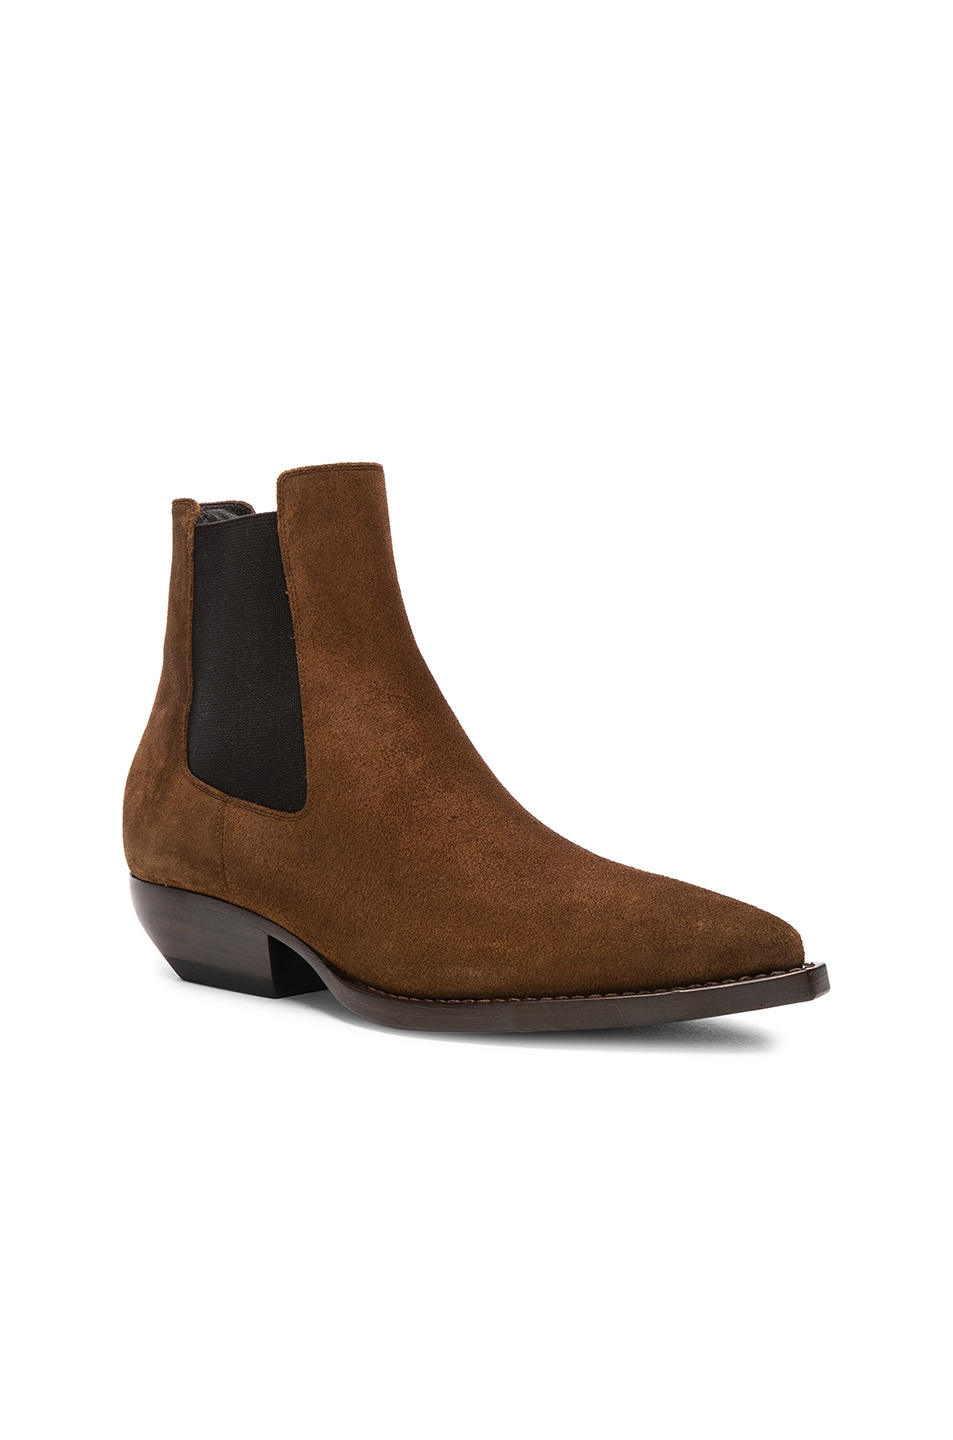 Image 2 of Saint Laurent Suede Theo Chelsea Boots in Caramel